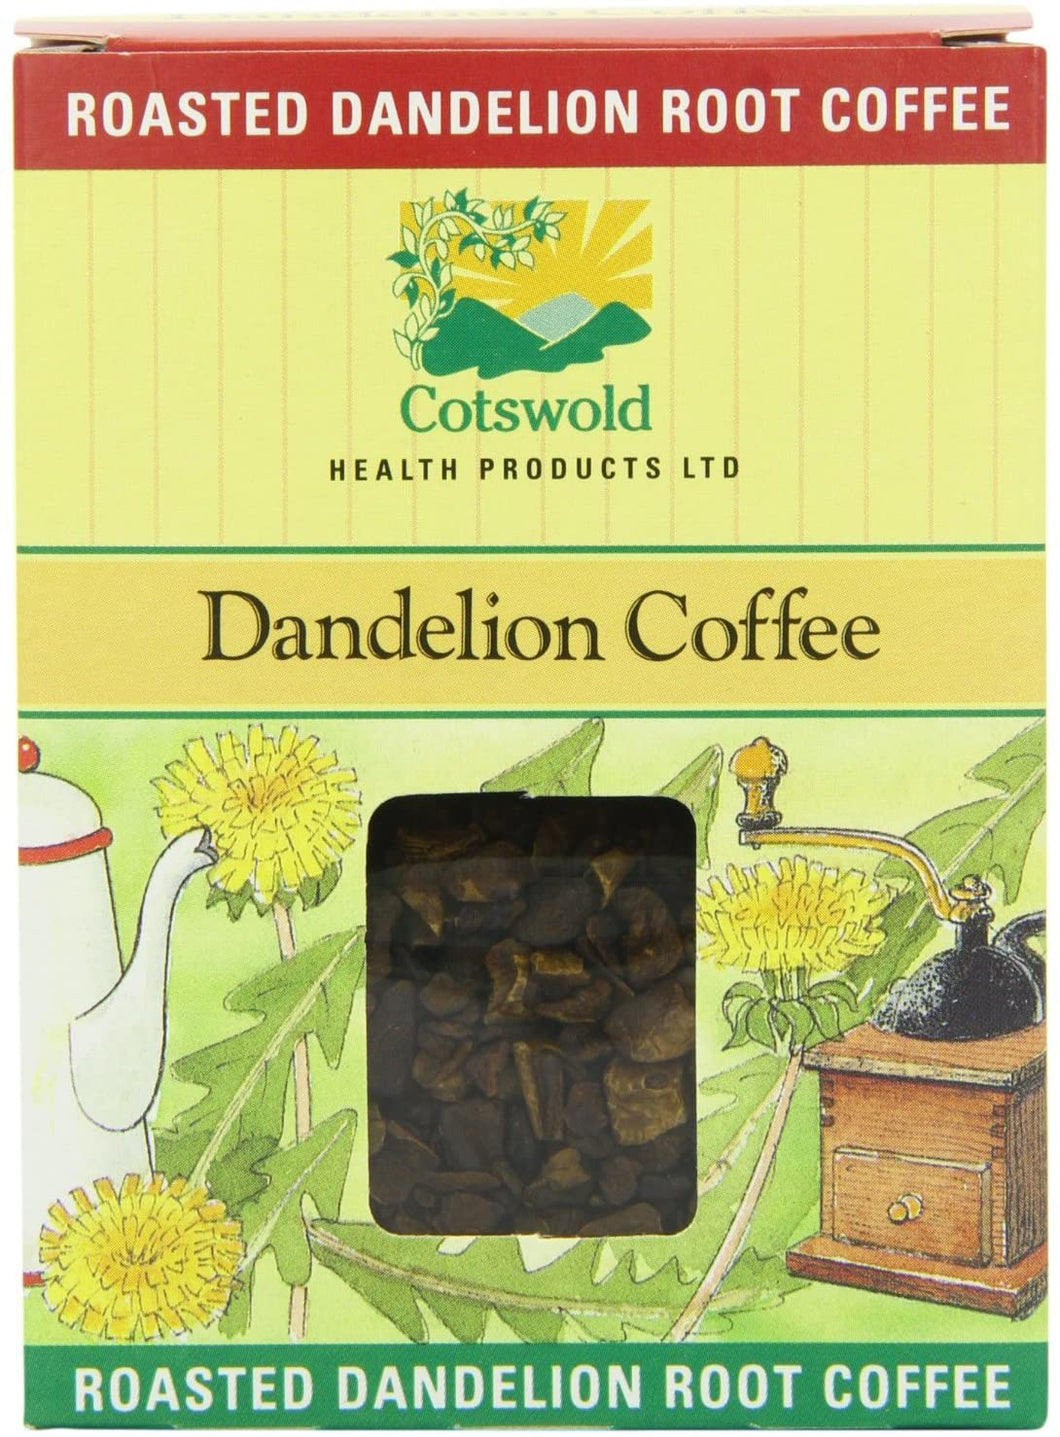 COTSWOLD HEALTH PRODUCTS, Dandelion Coffee (Roasted Root), 100g